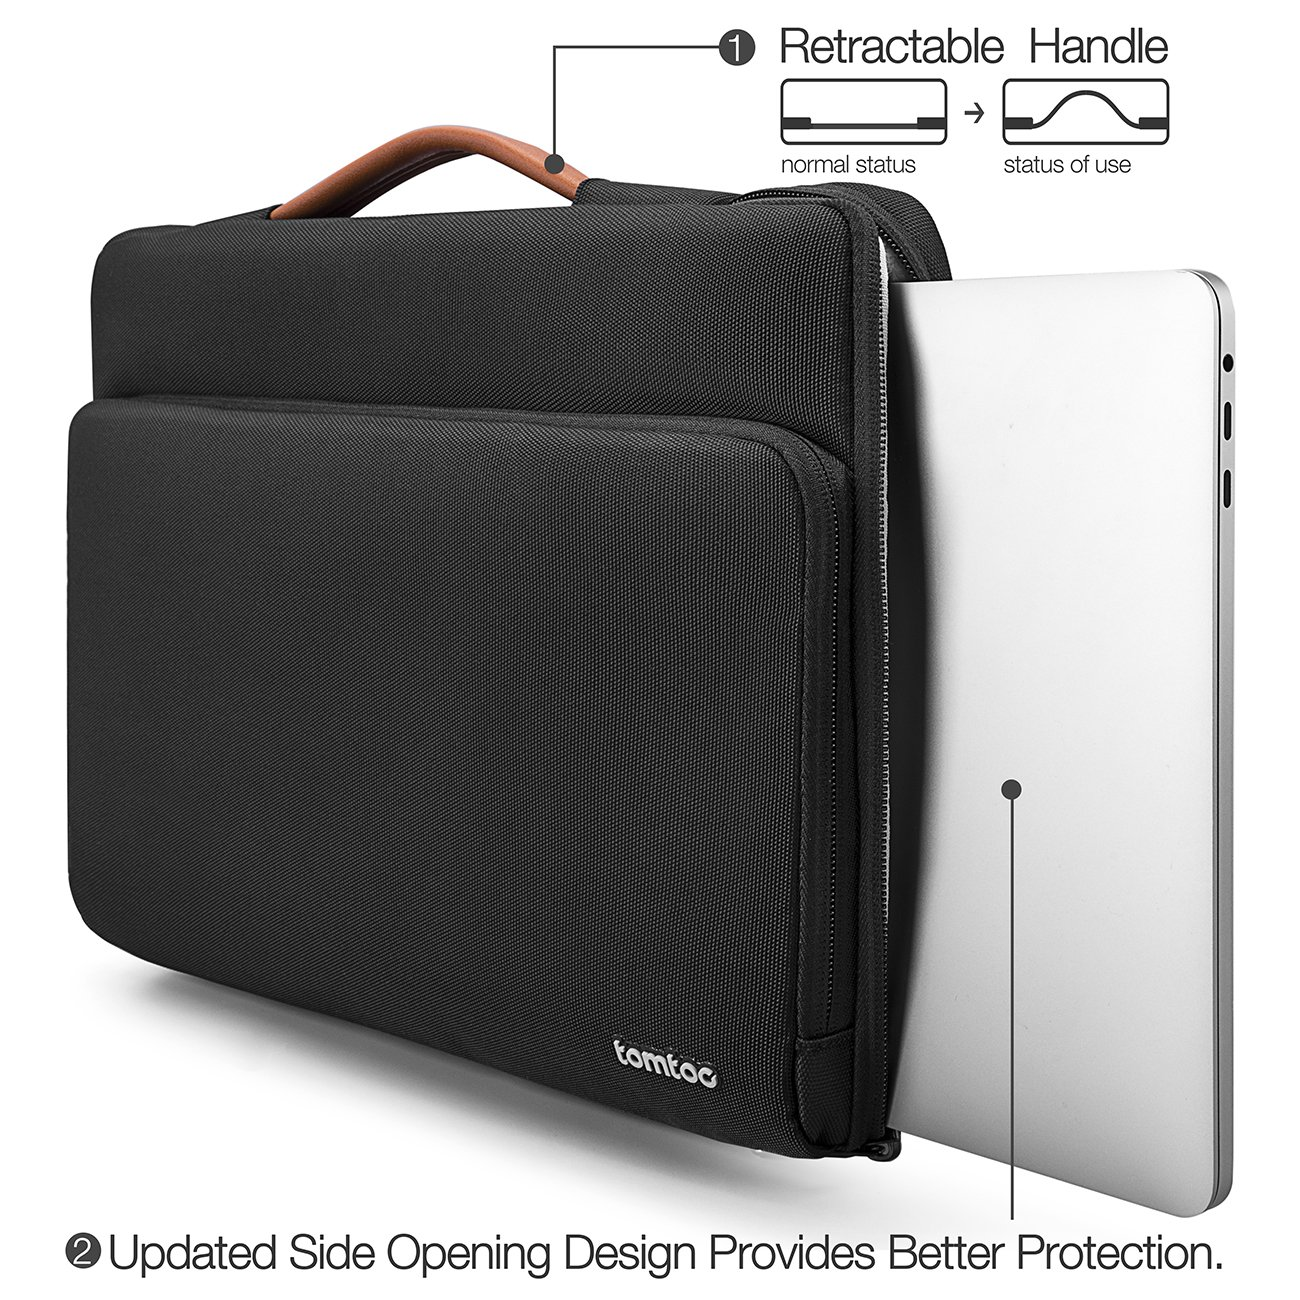 tomtoc 360 Protective Laptop Carrying Case for New MacBook Air 13-inch with Retina Display A1932, 13 Inch New MacBook Pro USB-C A1989 A1706 A1708, Microsoft Surface Pro 6/5/4, Ultrabook Accessory Bag by tomtoc (Image #6)